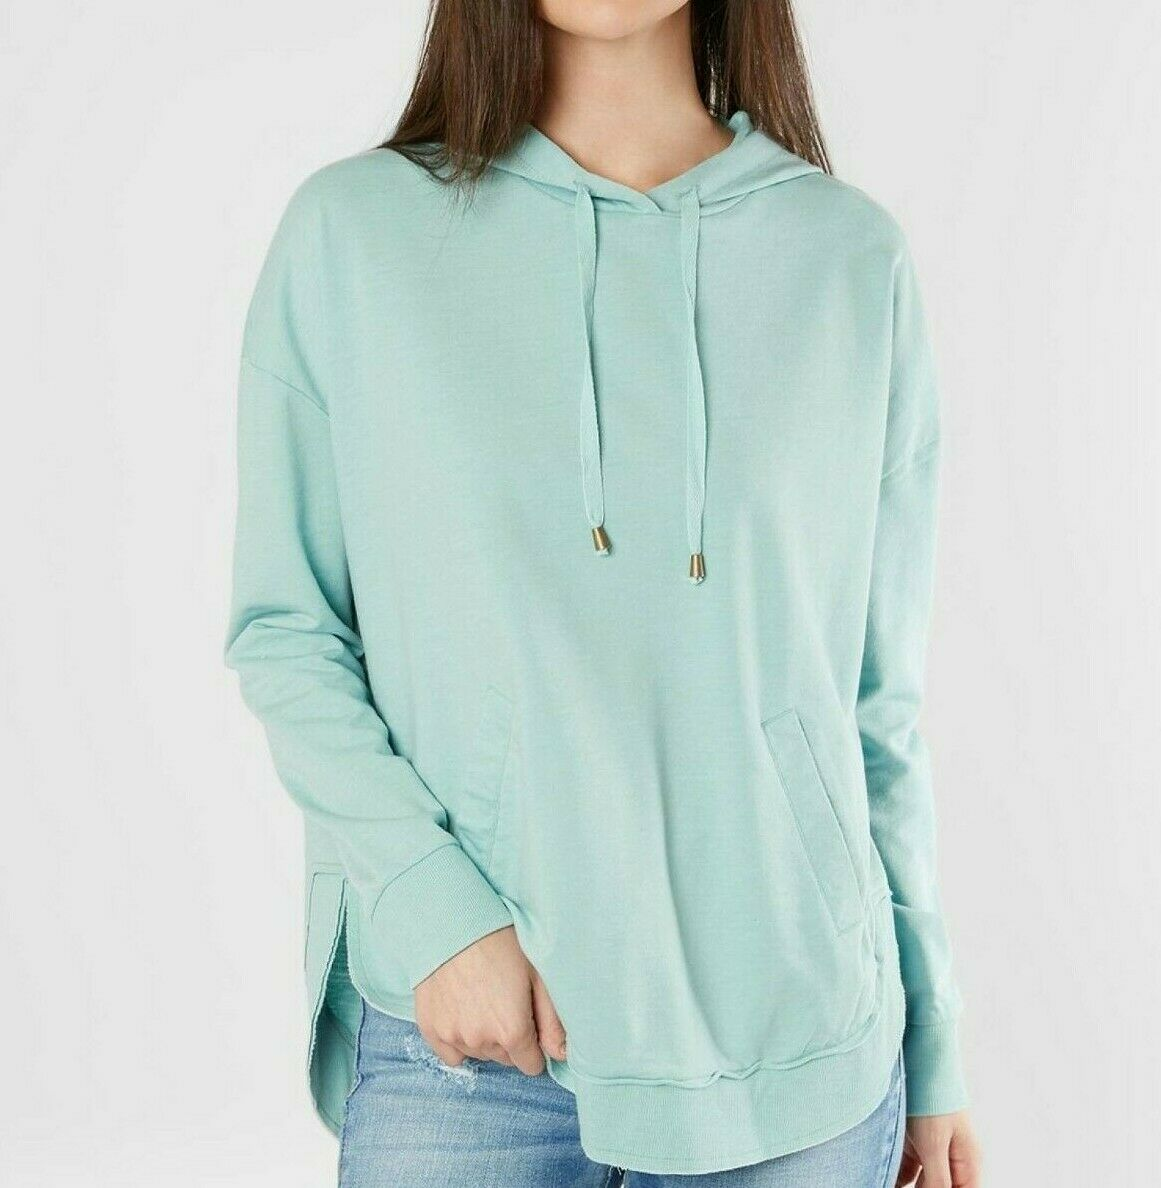 NWT - WHITE CROW Women's 'THE HOODED DAKOT' L S DRAWSTRINGS Fair Aqua HOODIE- XL